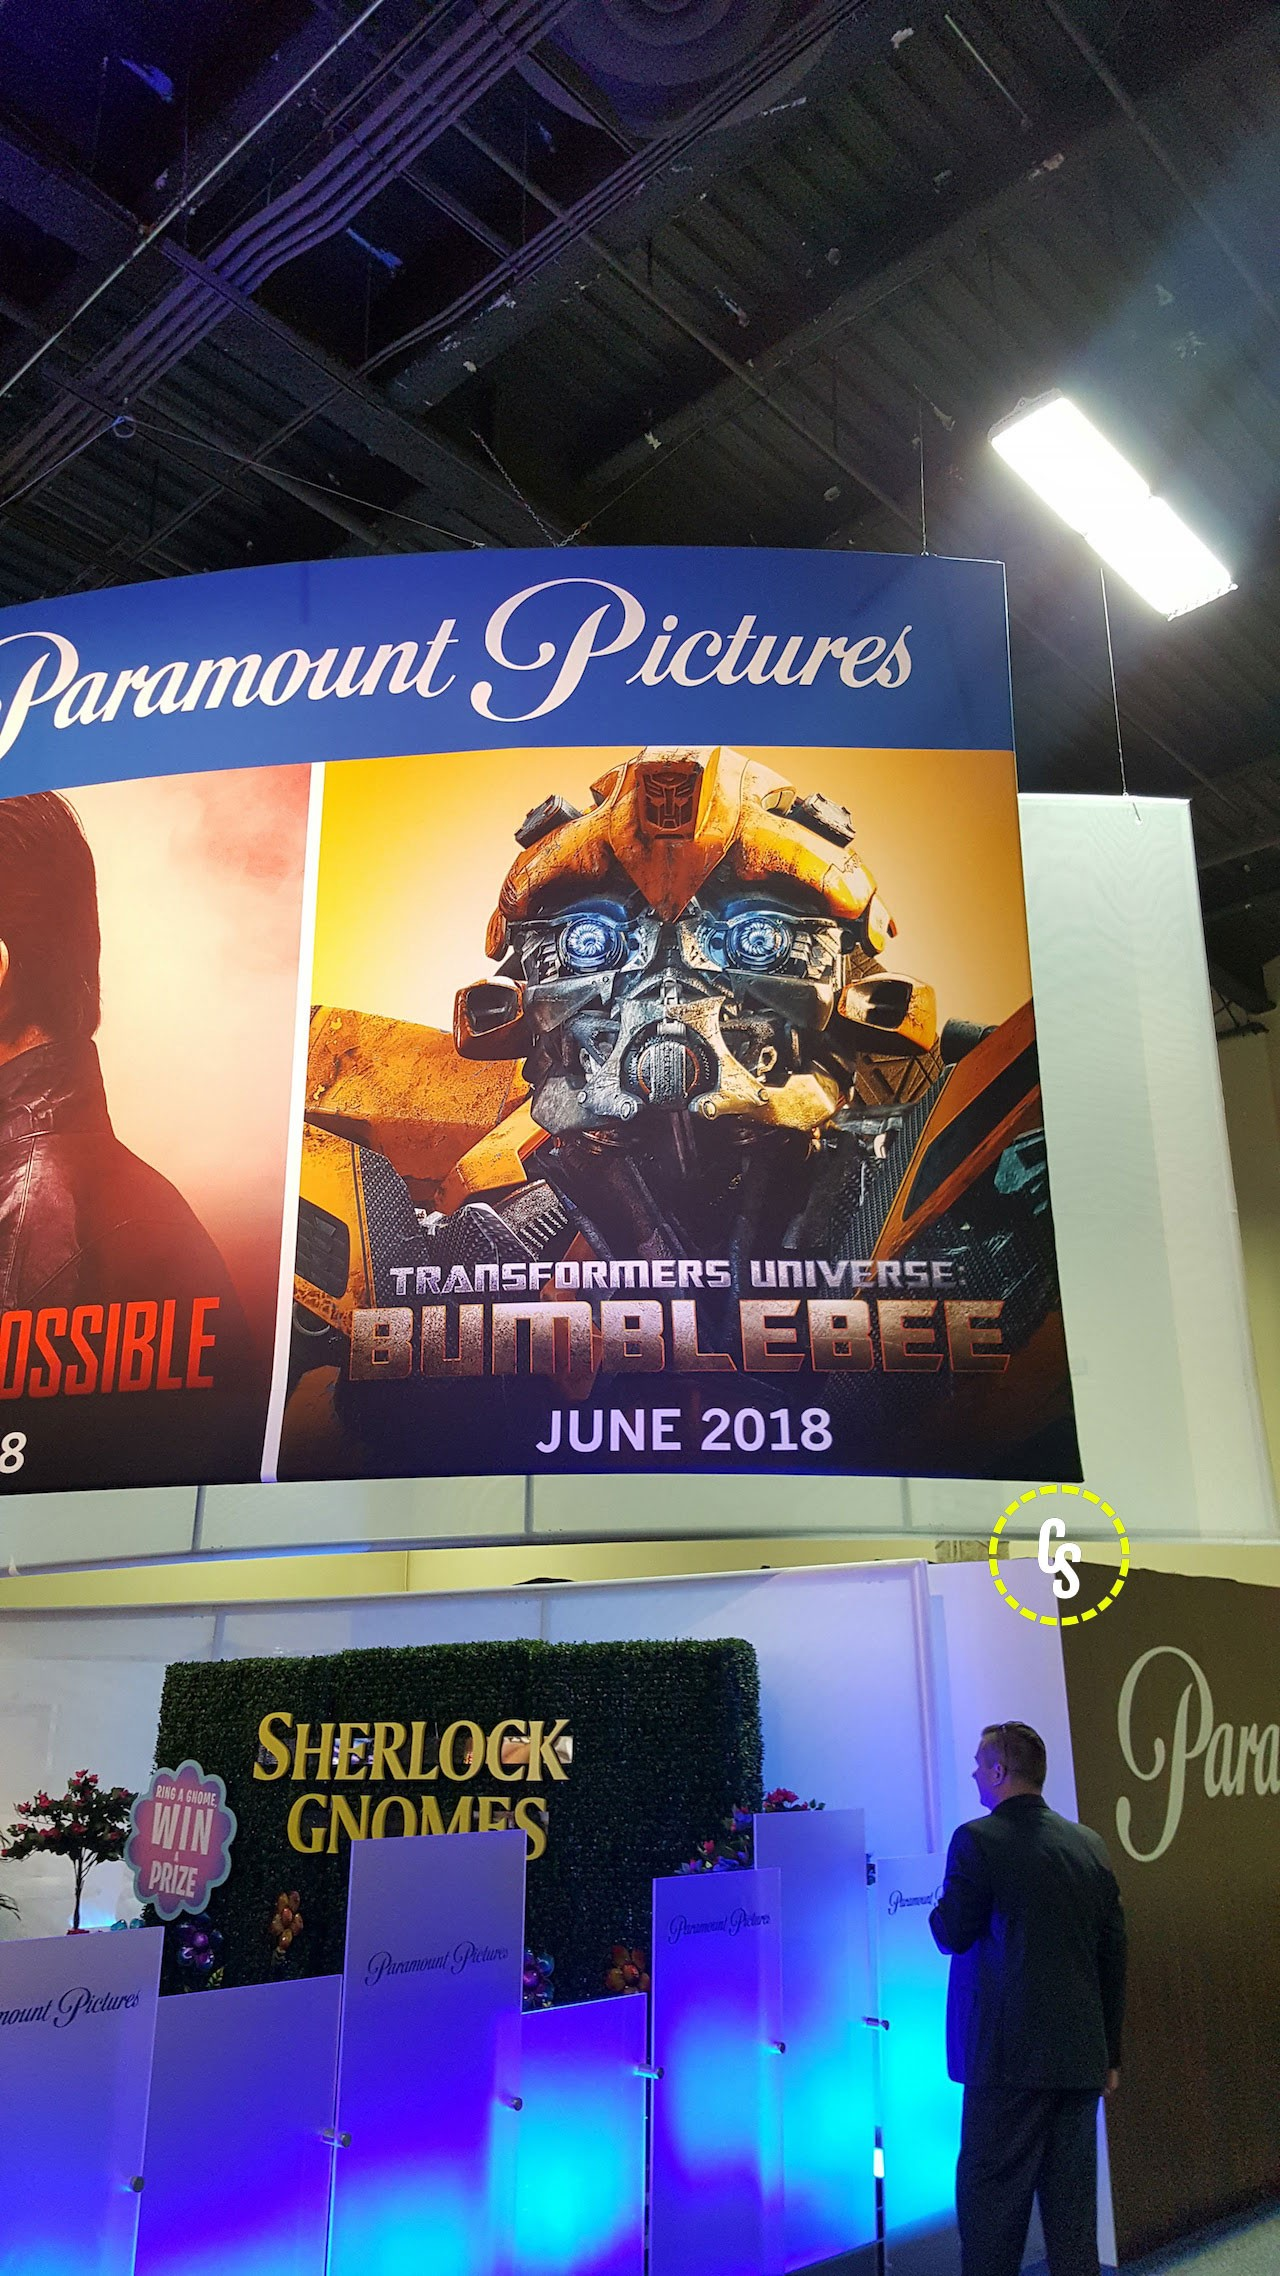 Not Toys For 2018 From Moive : Transformers bumblebee movie confirmed to be a